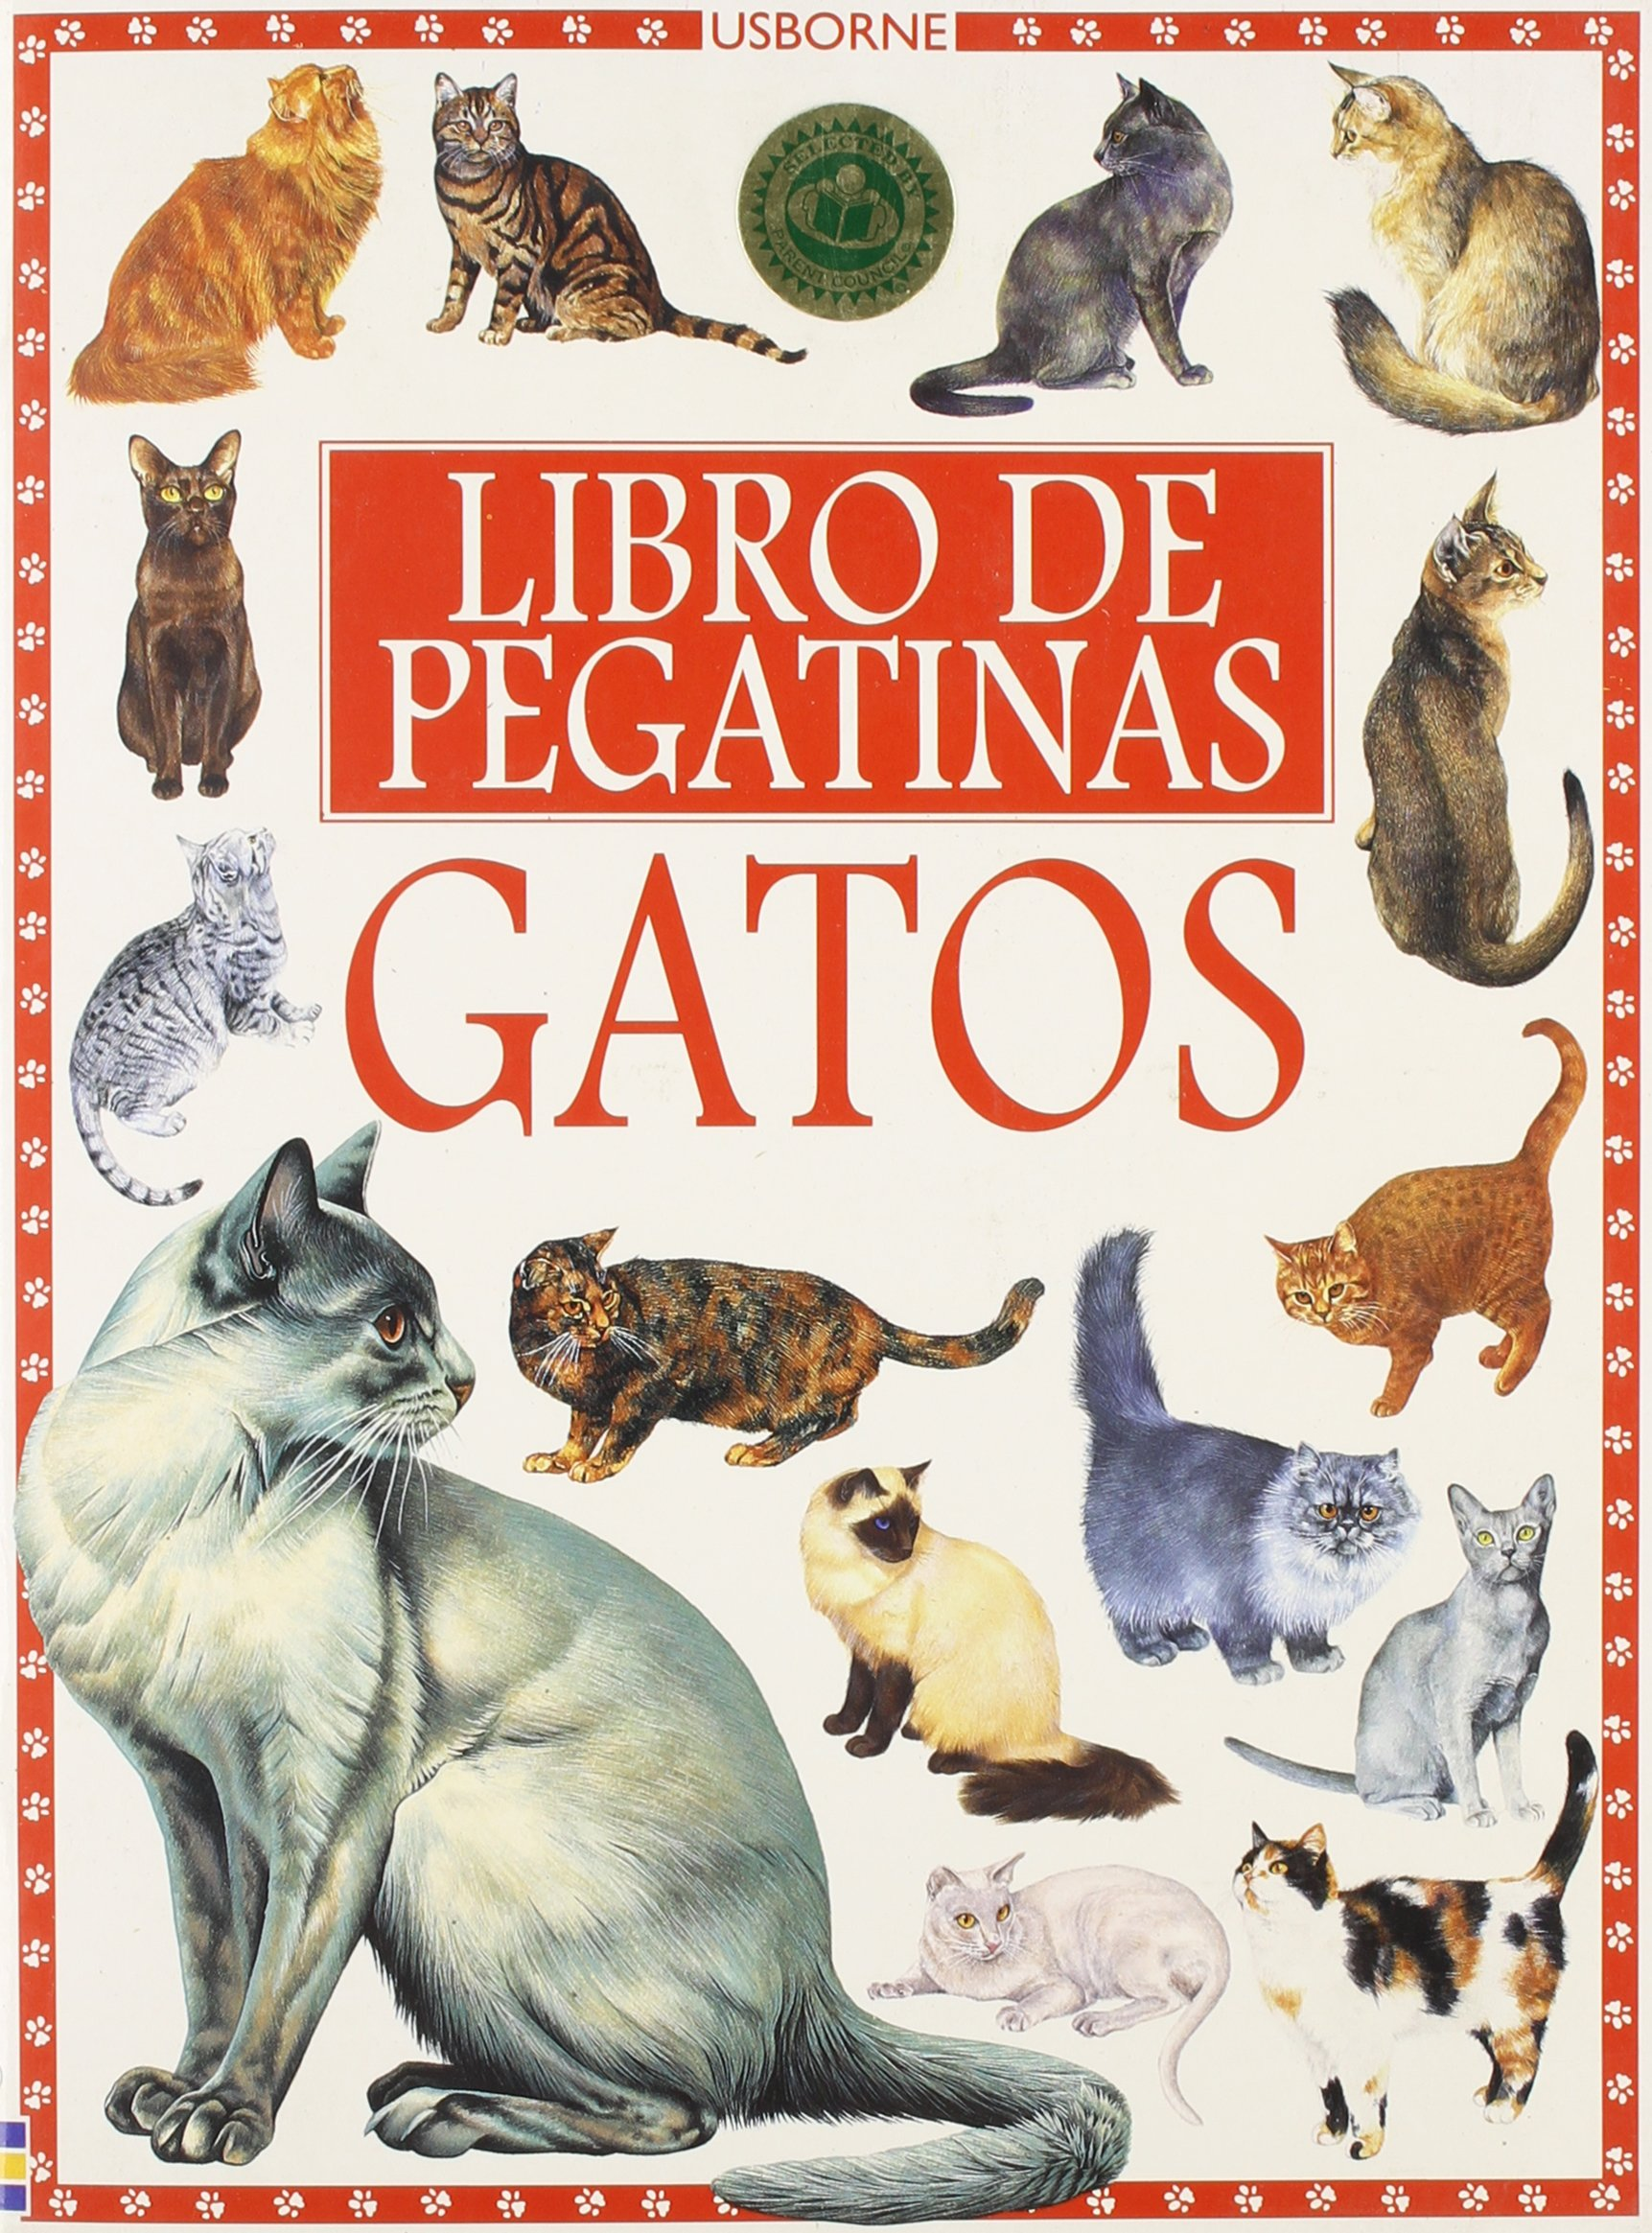 Gatos (Spanish Edition) (Spanish) Paperback – October 1, 2000